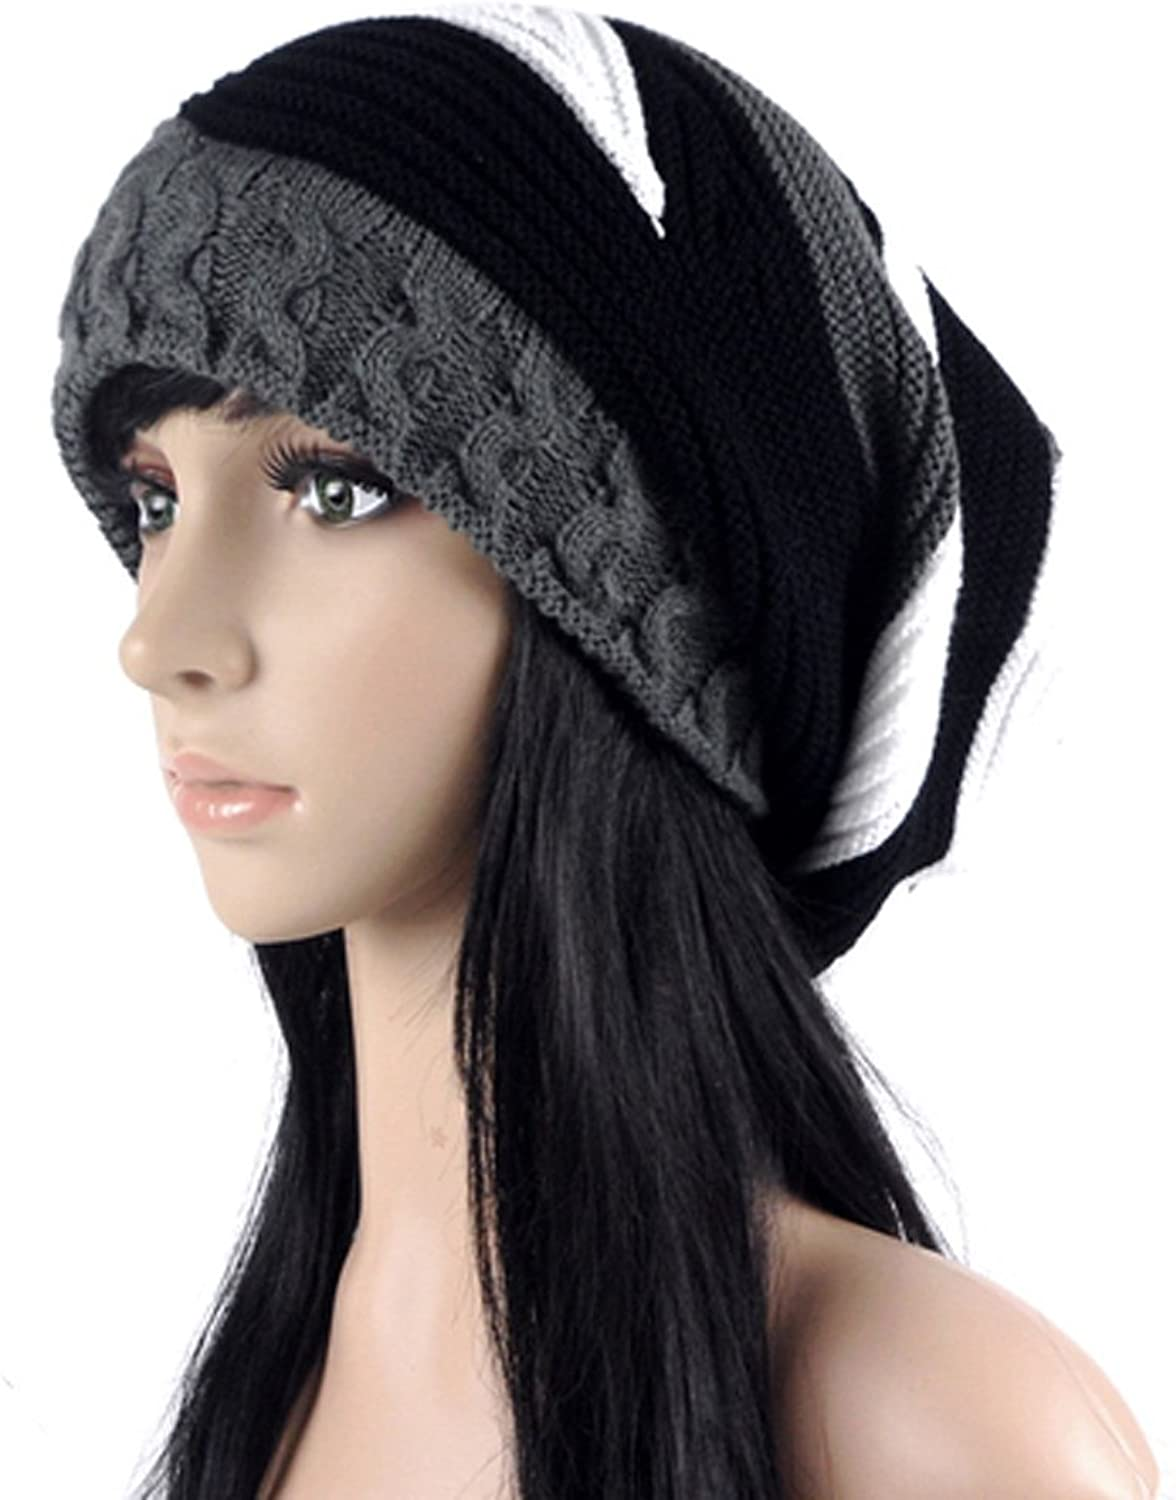 ALiberSoul Slouchy Baggy Beanie Contrast color Knit Hat